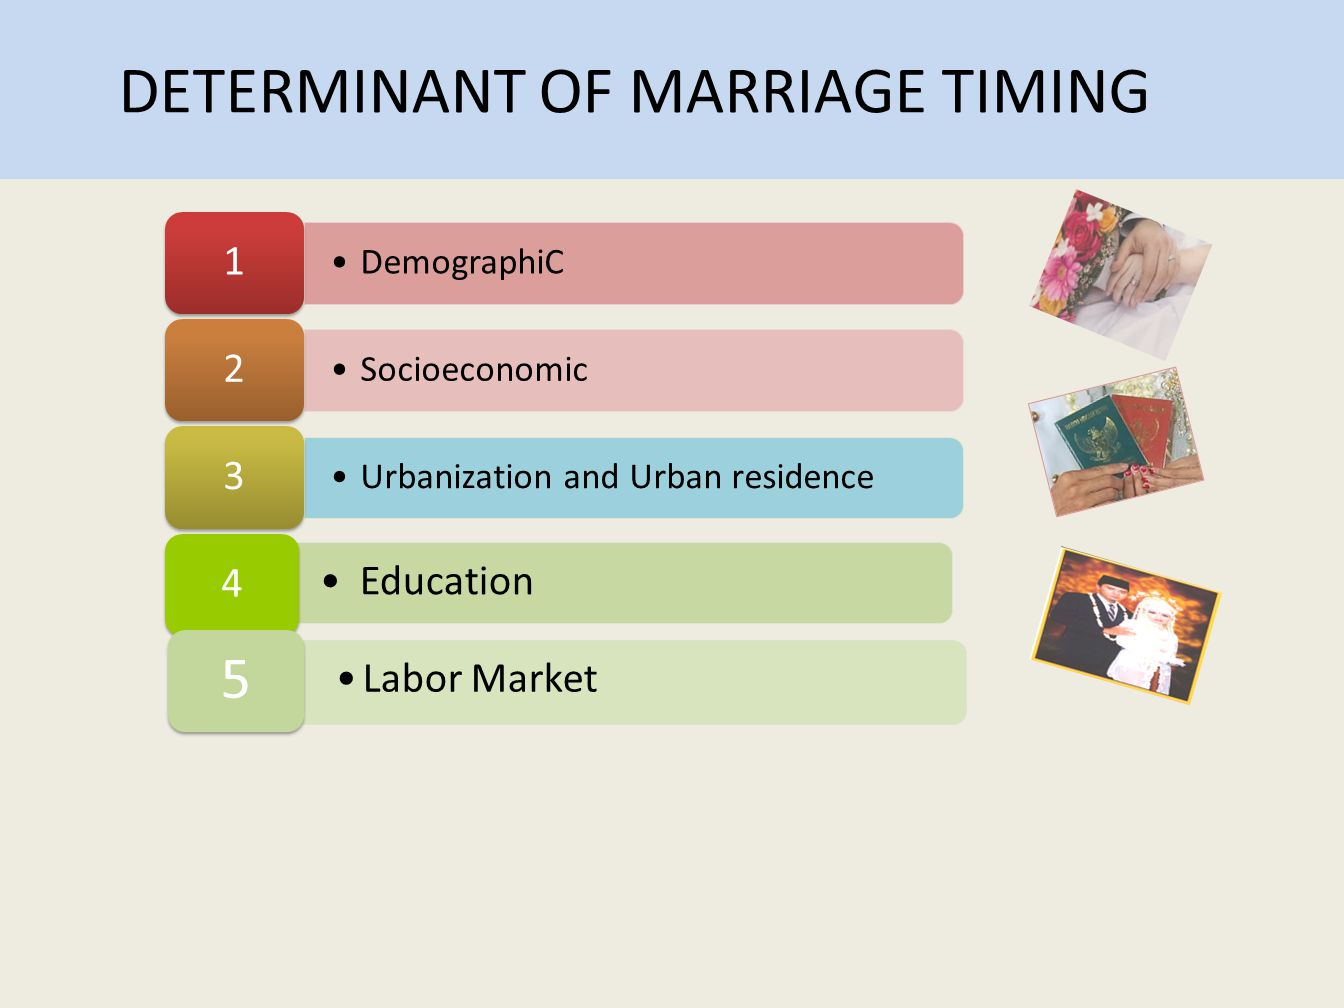 DETERMINANT OF MARRIAGE TIMING